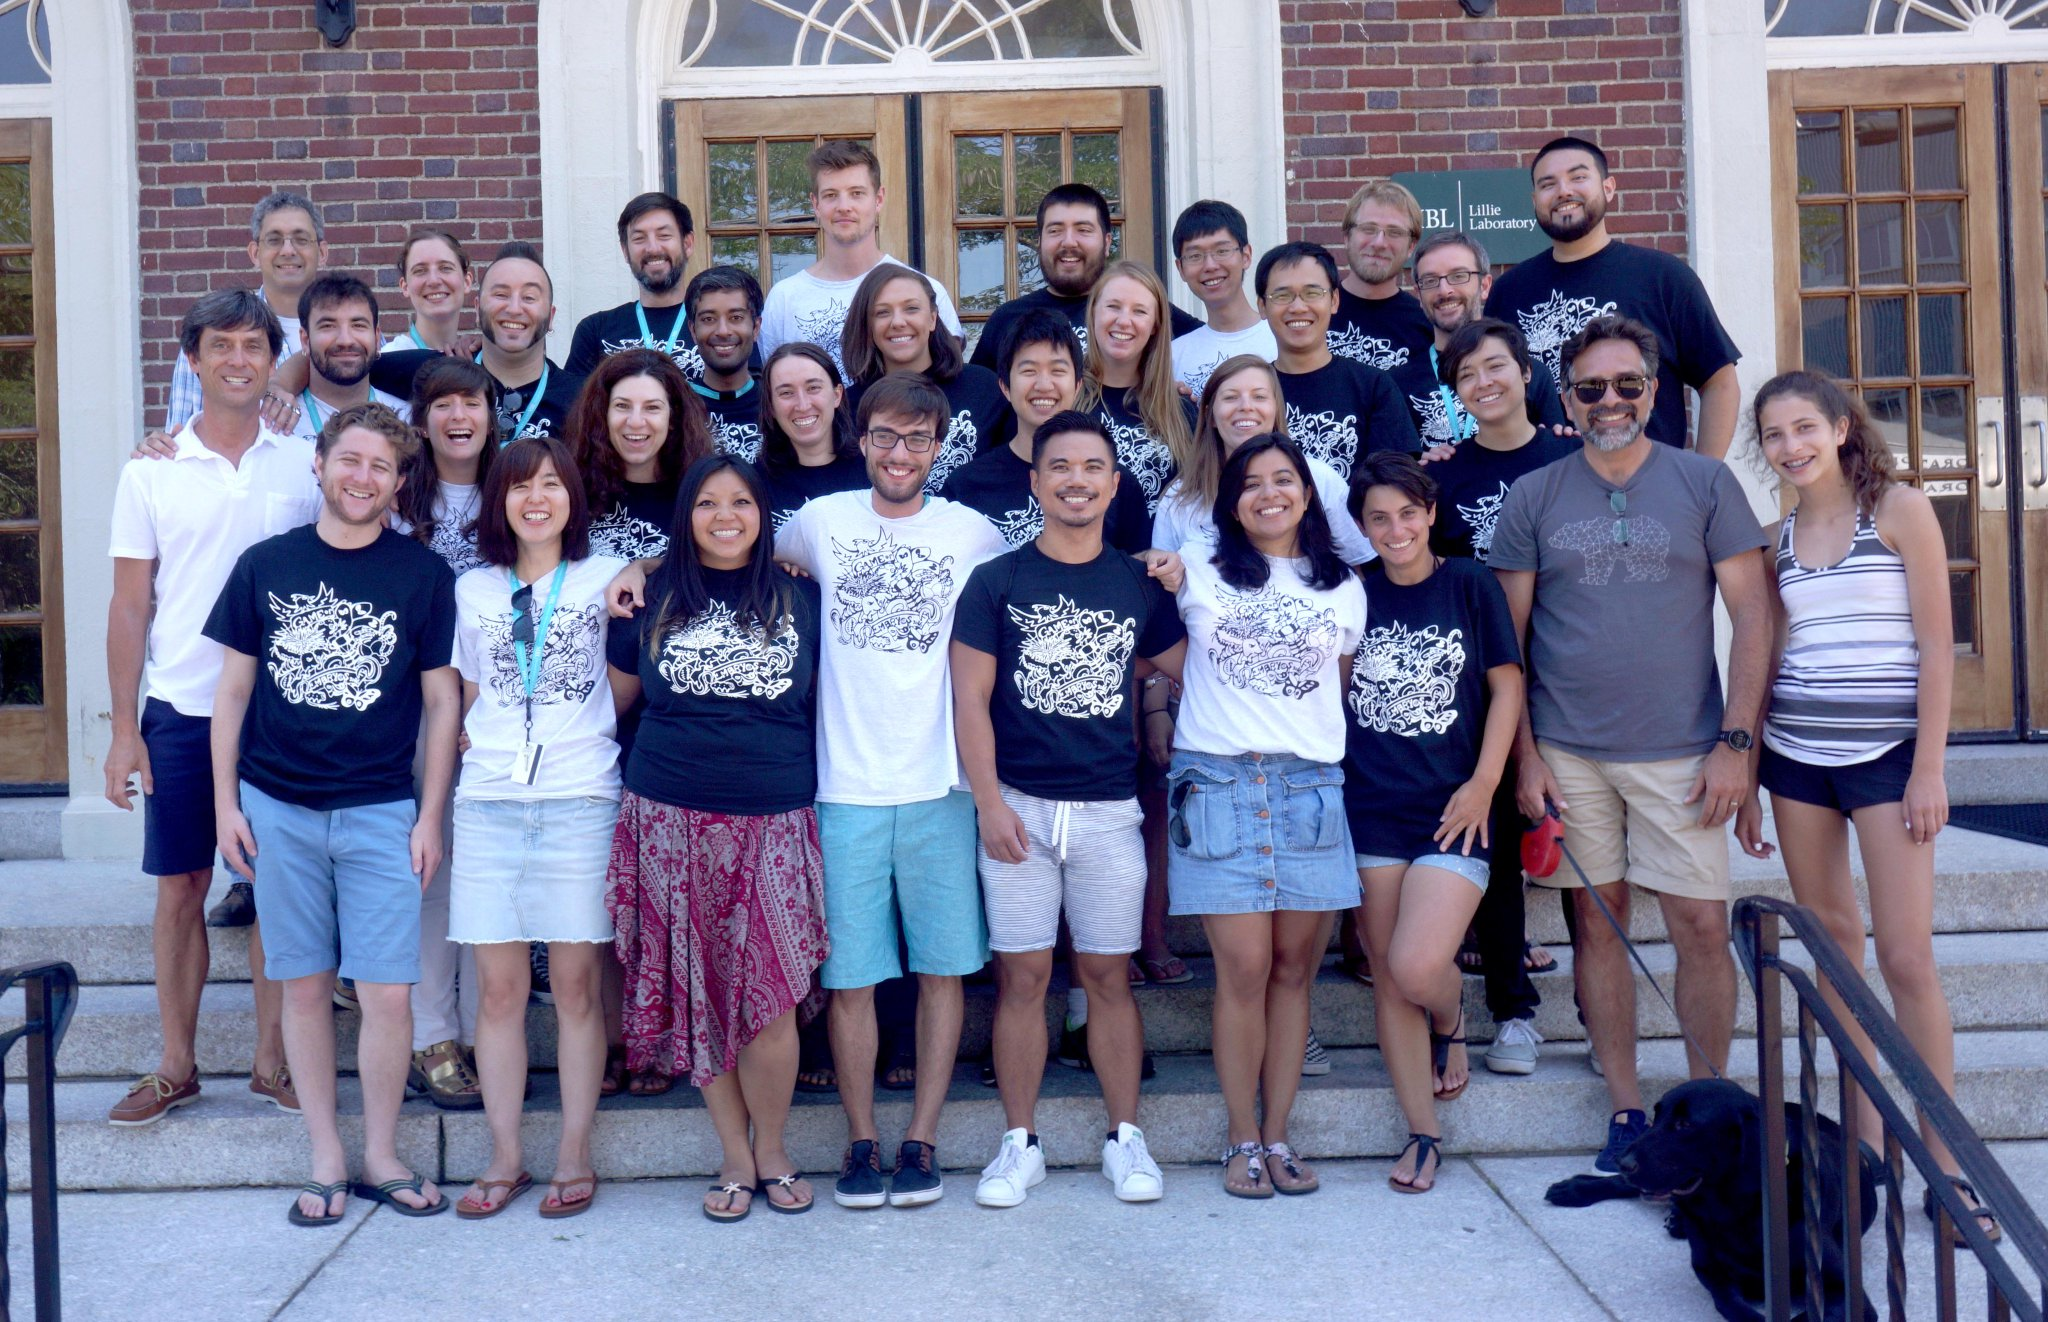 Unofficial @MBLScience #embryo2016 Class Photo. https://t.co/nYopotClW3